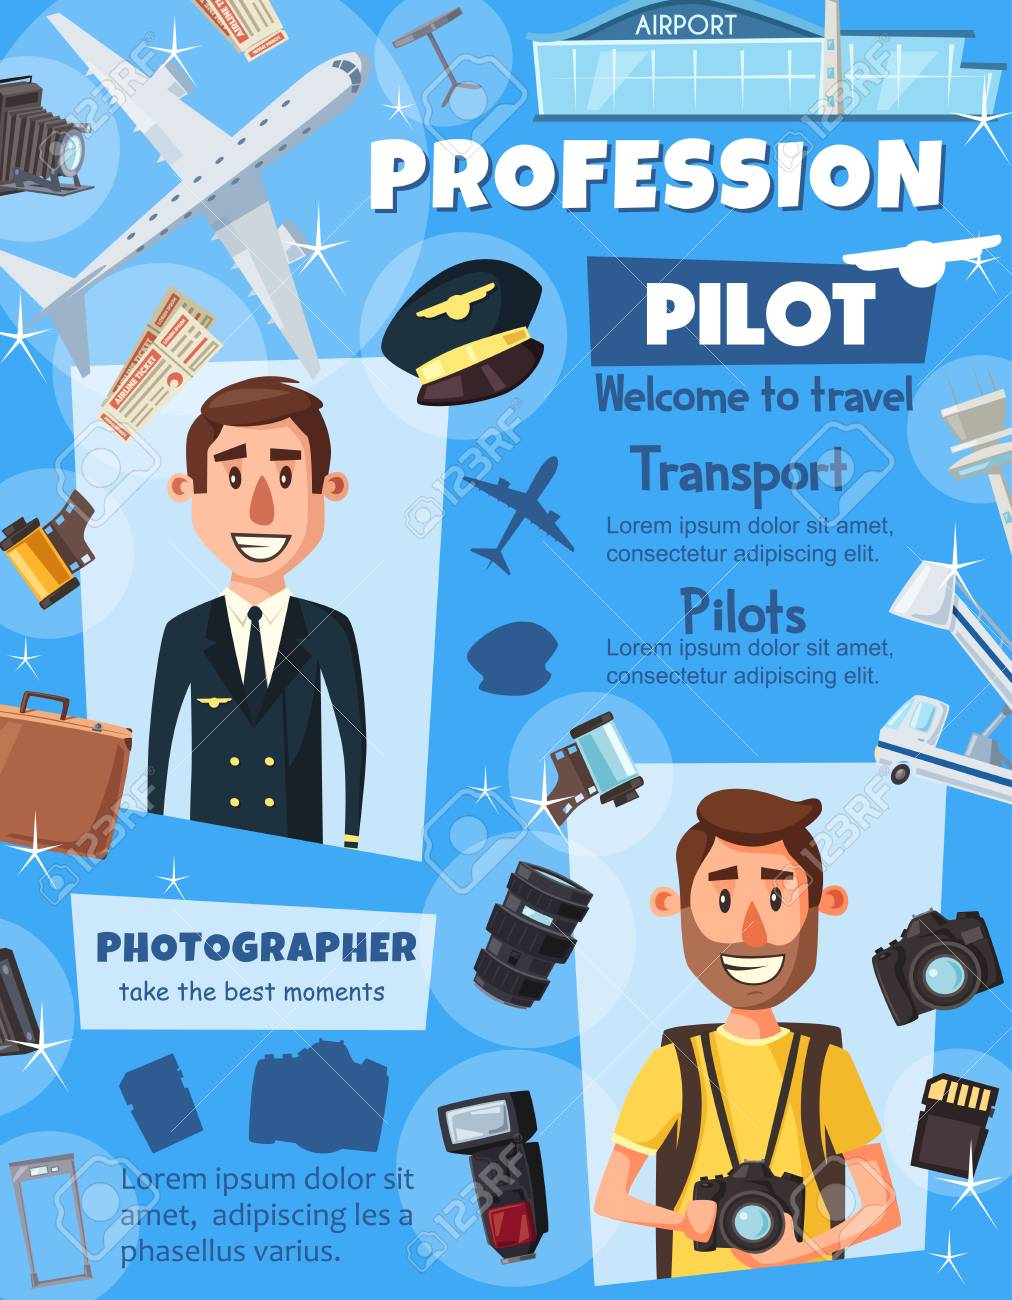 Pilot and photographer professions, aviation and photography